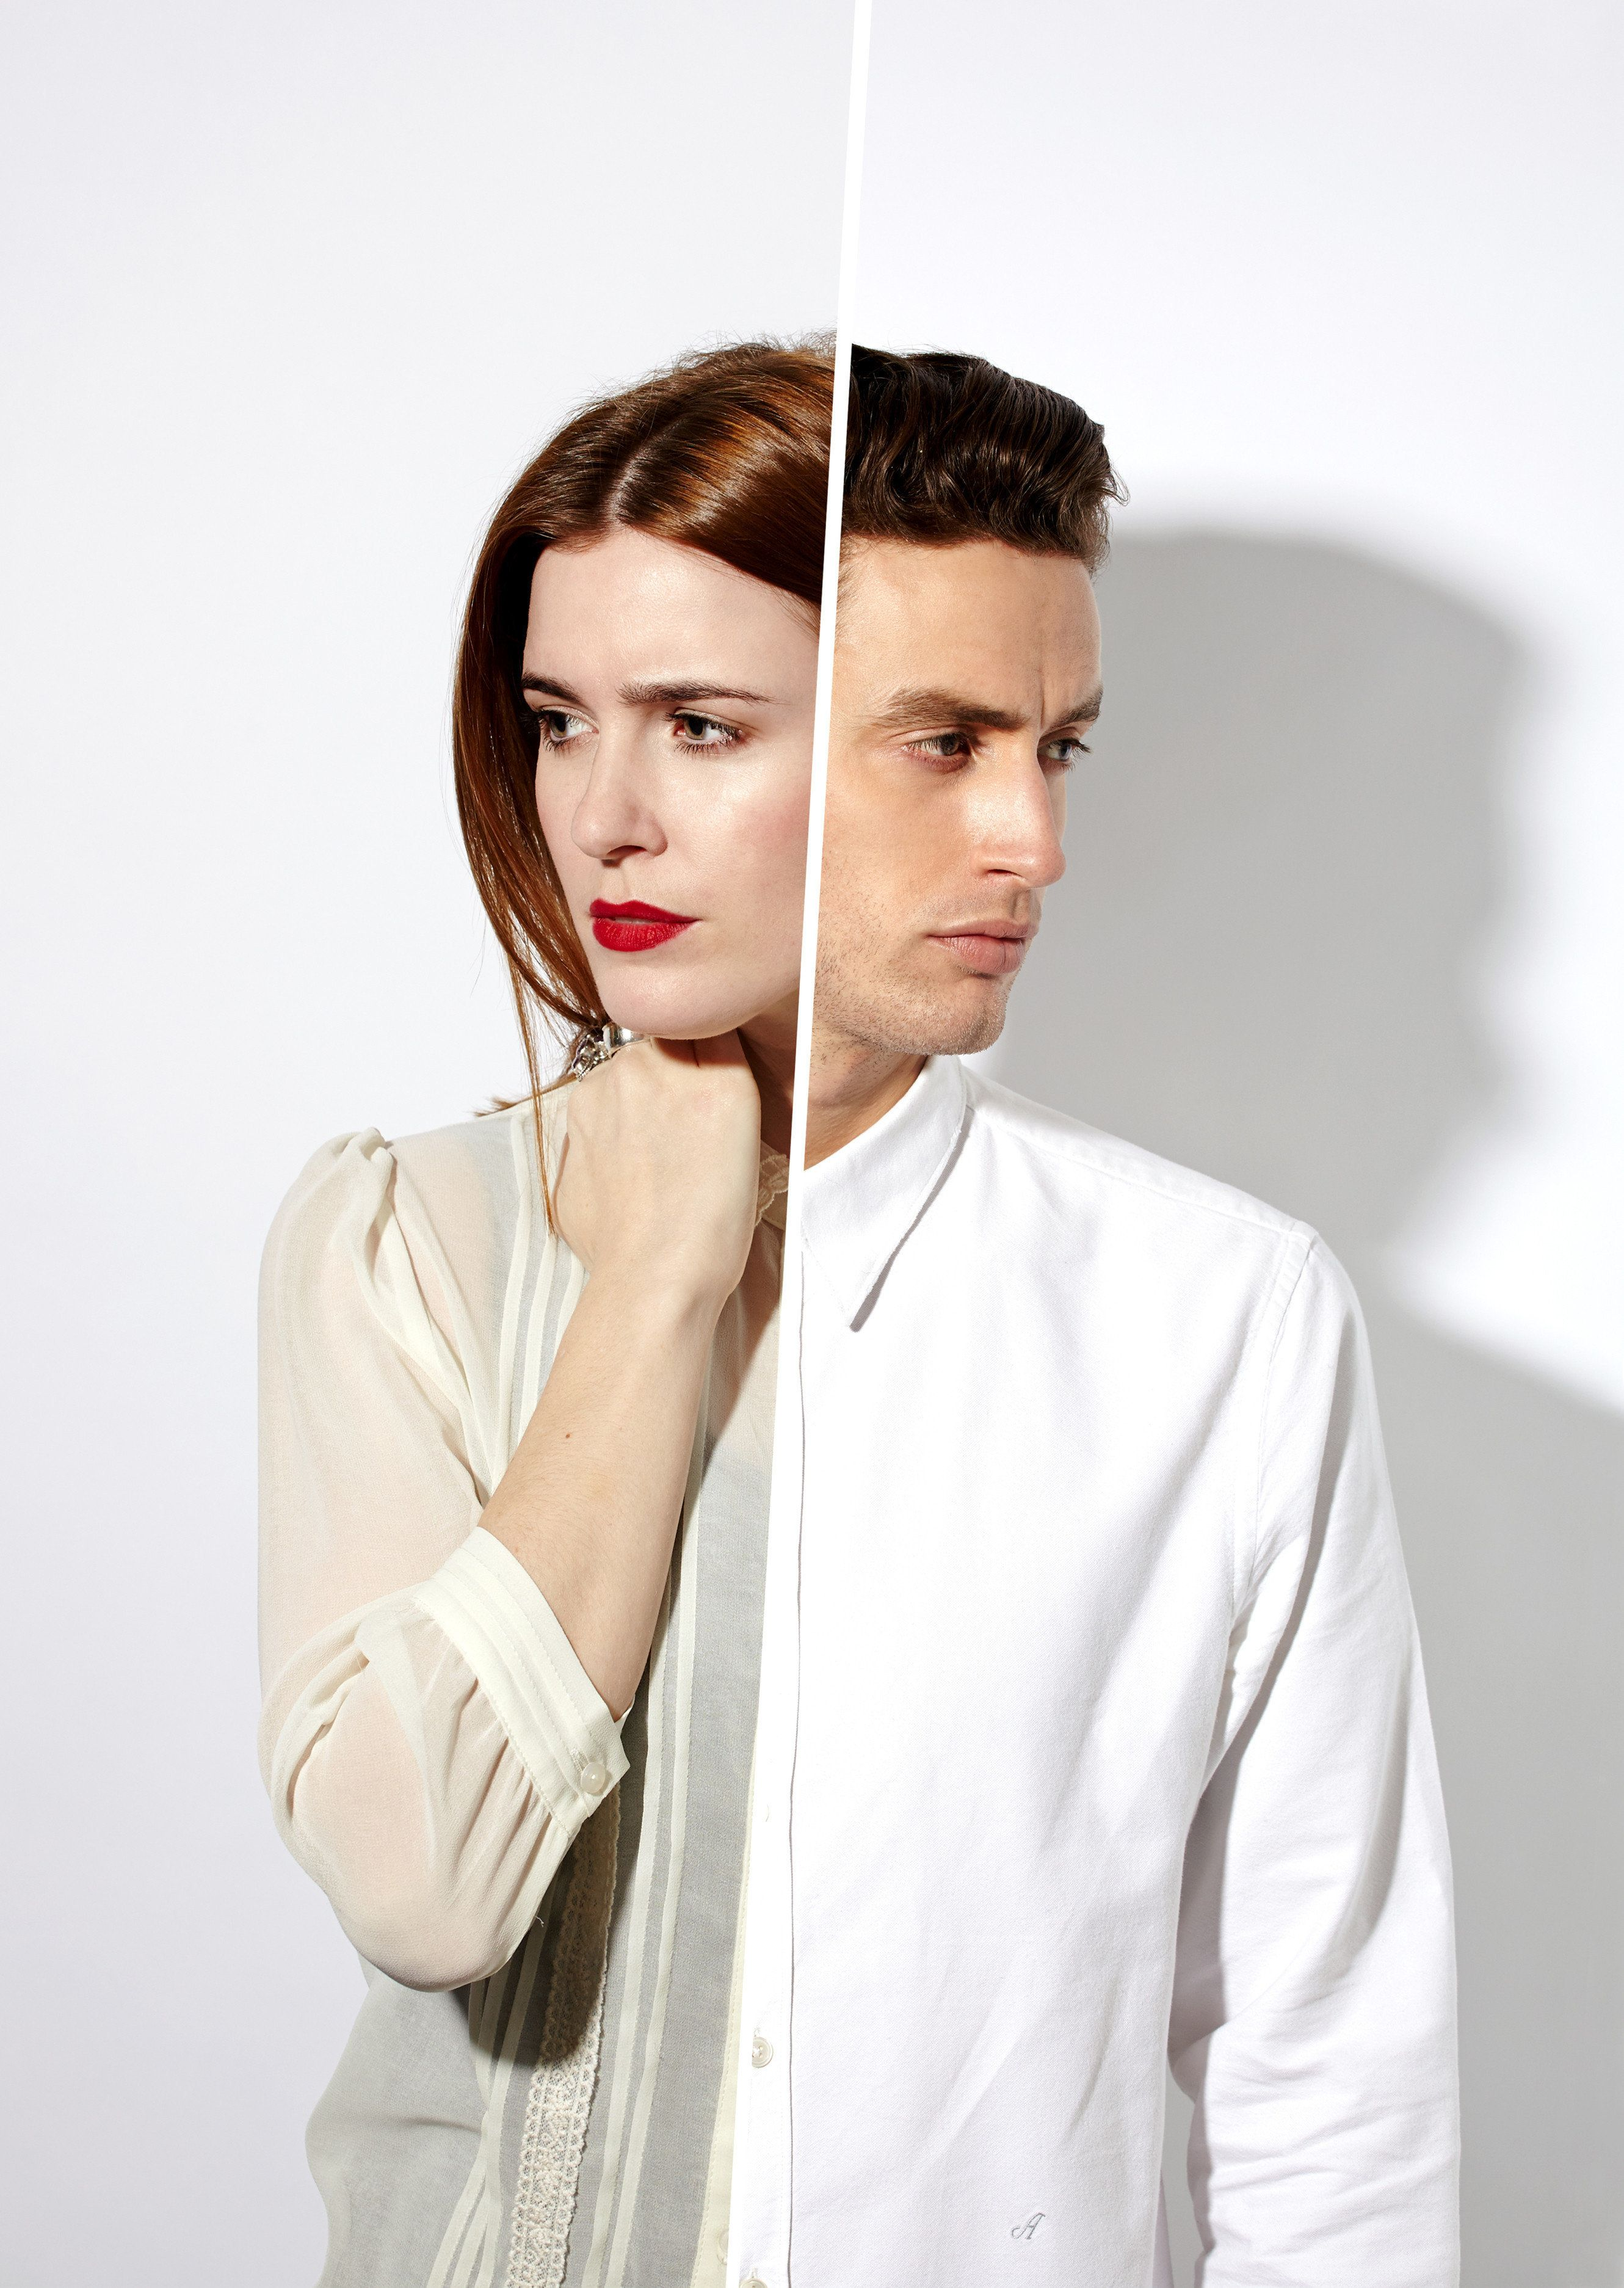 man and woman reflected in a mirror